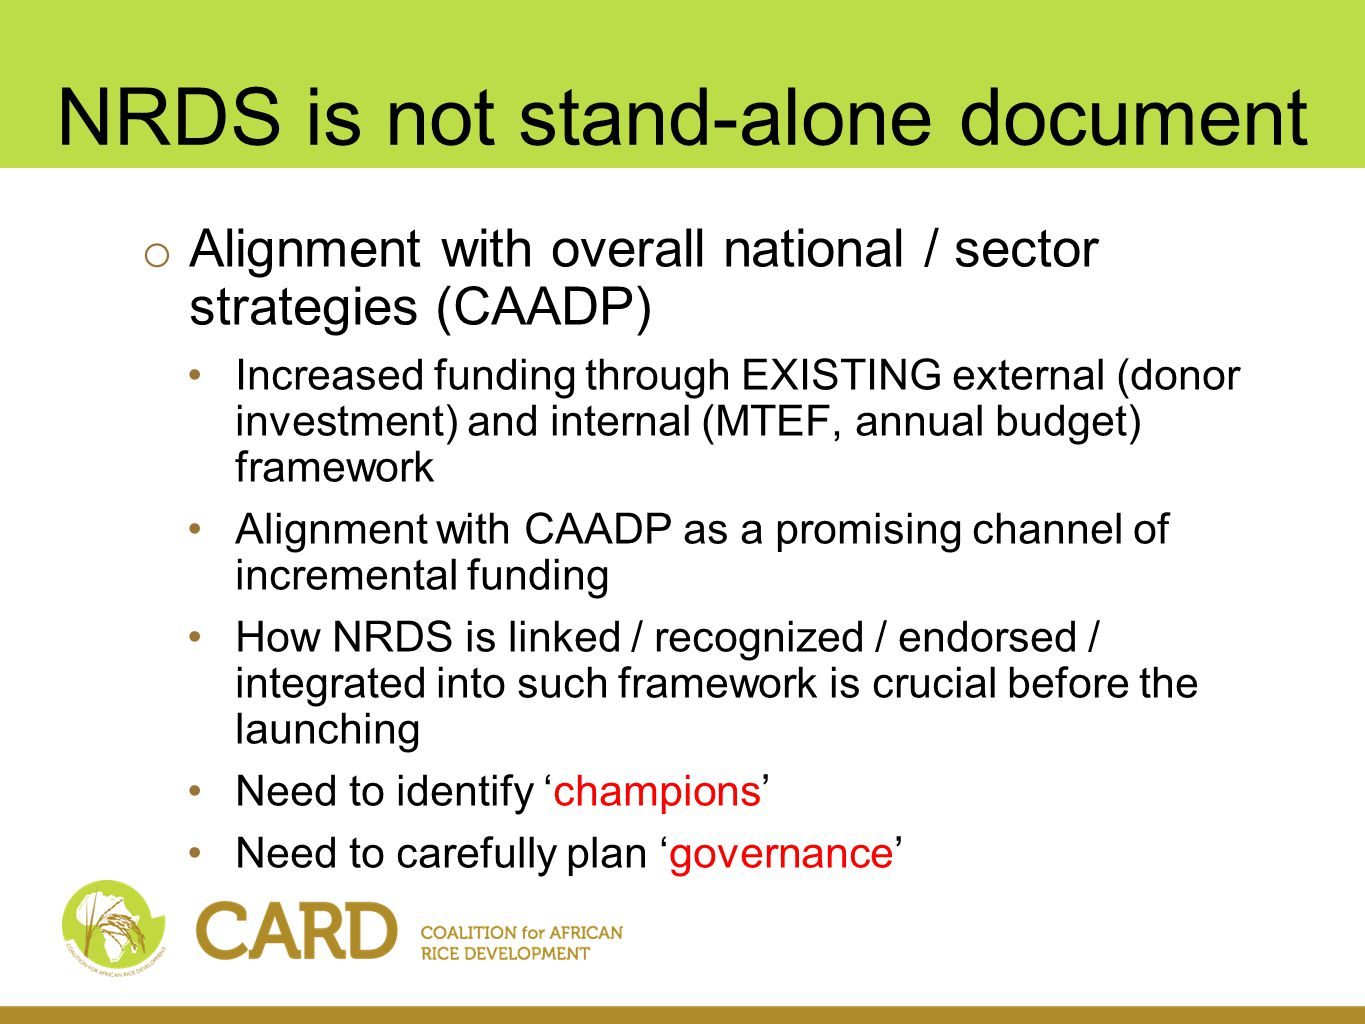 NRDS is not stand-alone document o Alignment with overall national / sector strategies (CAADP) Increased funding through EXISTING external (donor investment) and internal (MTEF, annual budget) framework Alignment with CAADP as a promising channel of incremental funding How NRDS is linked / recognized / endorsed / integrated into such framework is crucial before the launching Need to identify champions Need to carefully plan governance